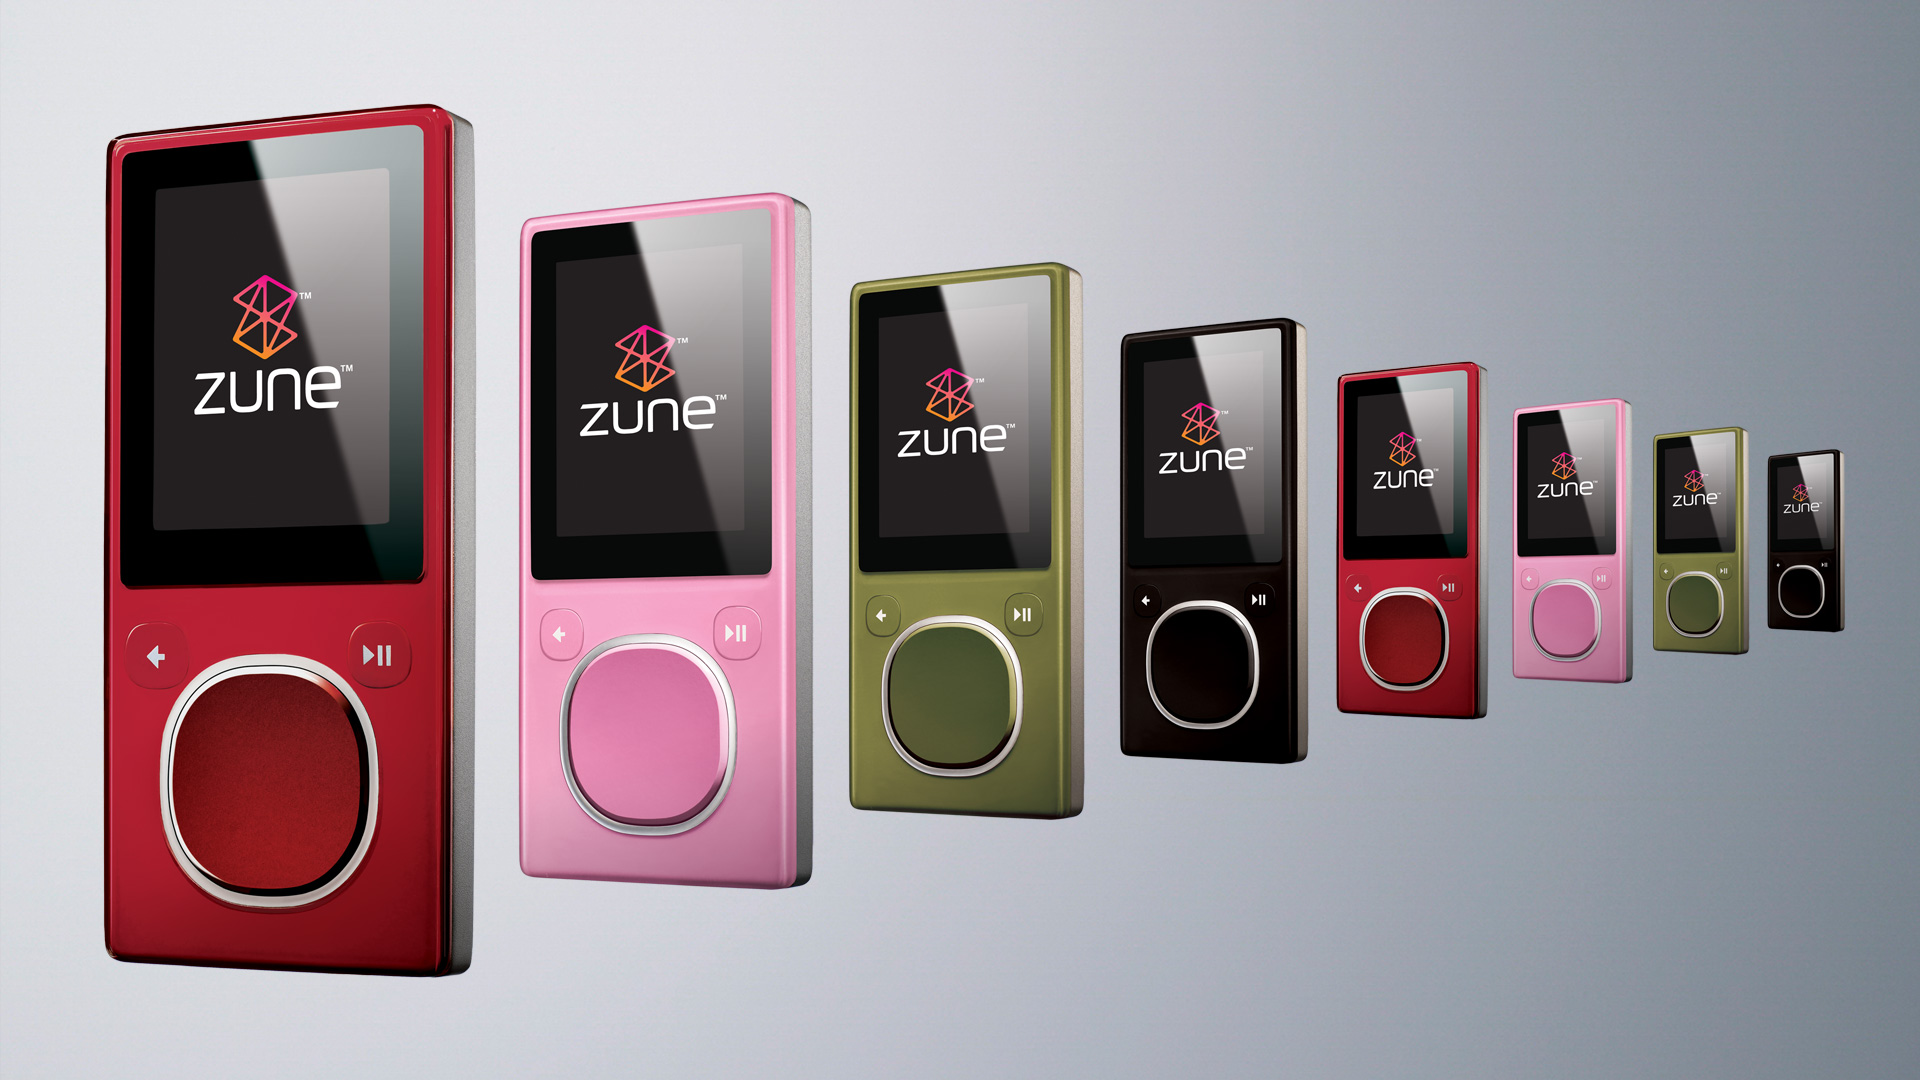 zune-product